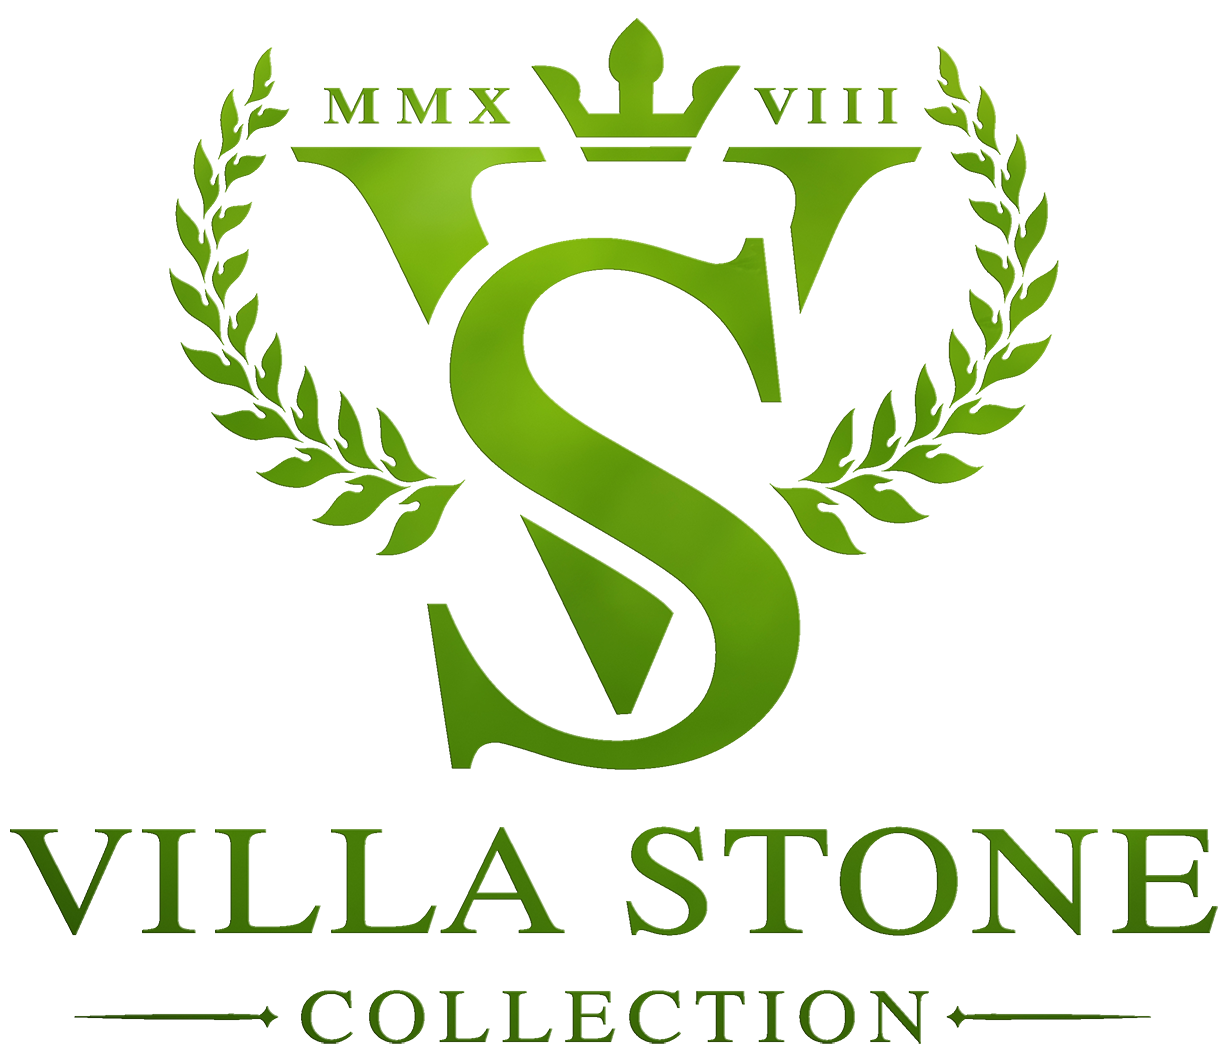 VILLA STONE COLLECTION_LOGO Final GREEN.png